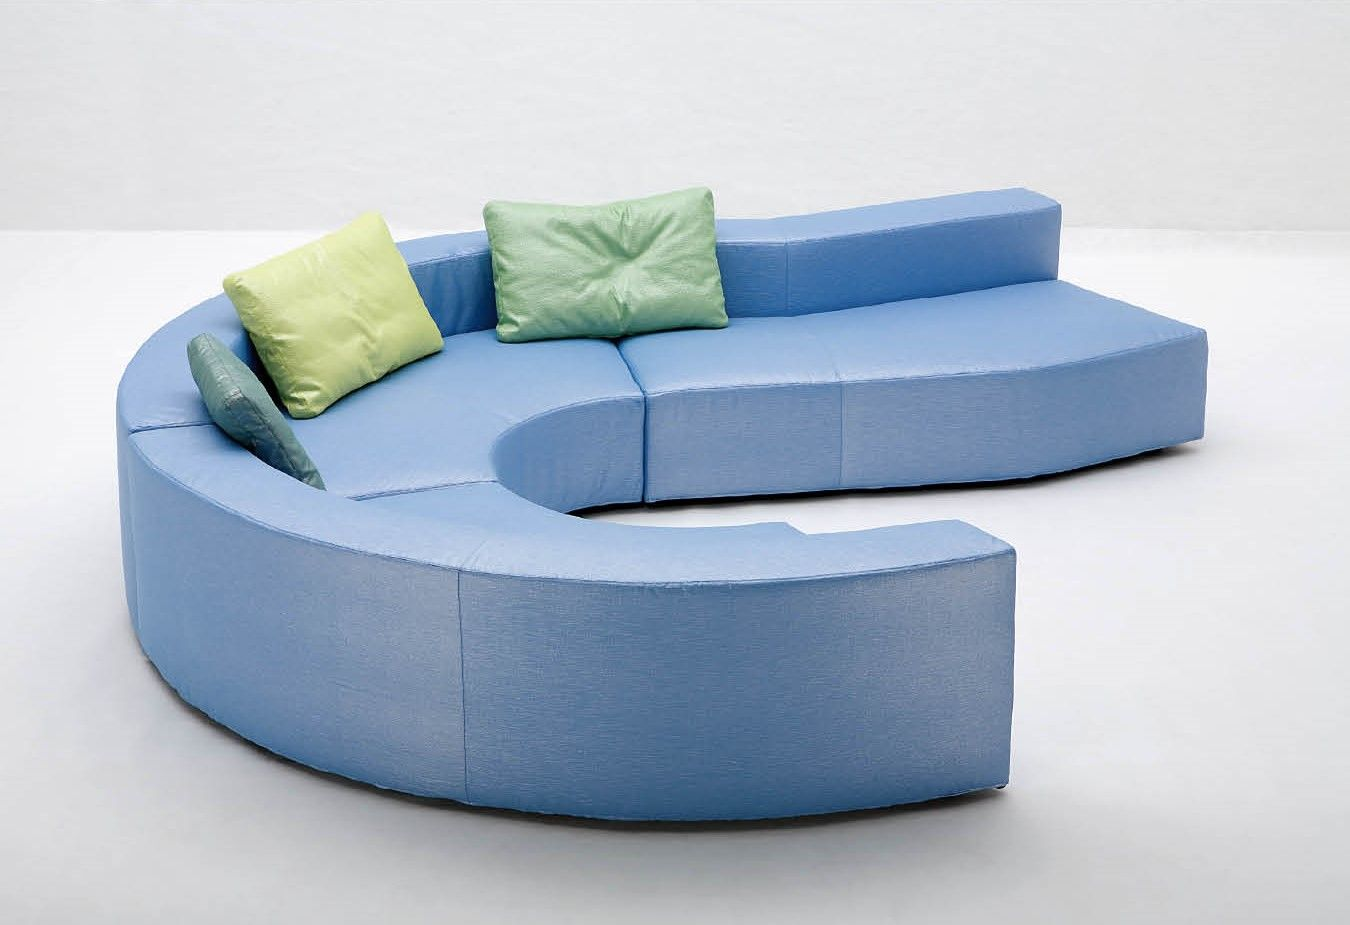 Multilove Sectional Sofa By Space Time For Giovannetti For Sale At Pamono Amazing Design